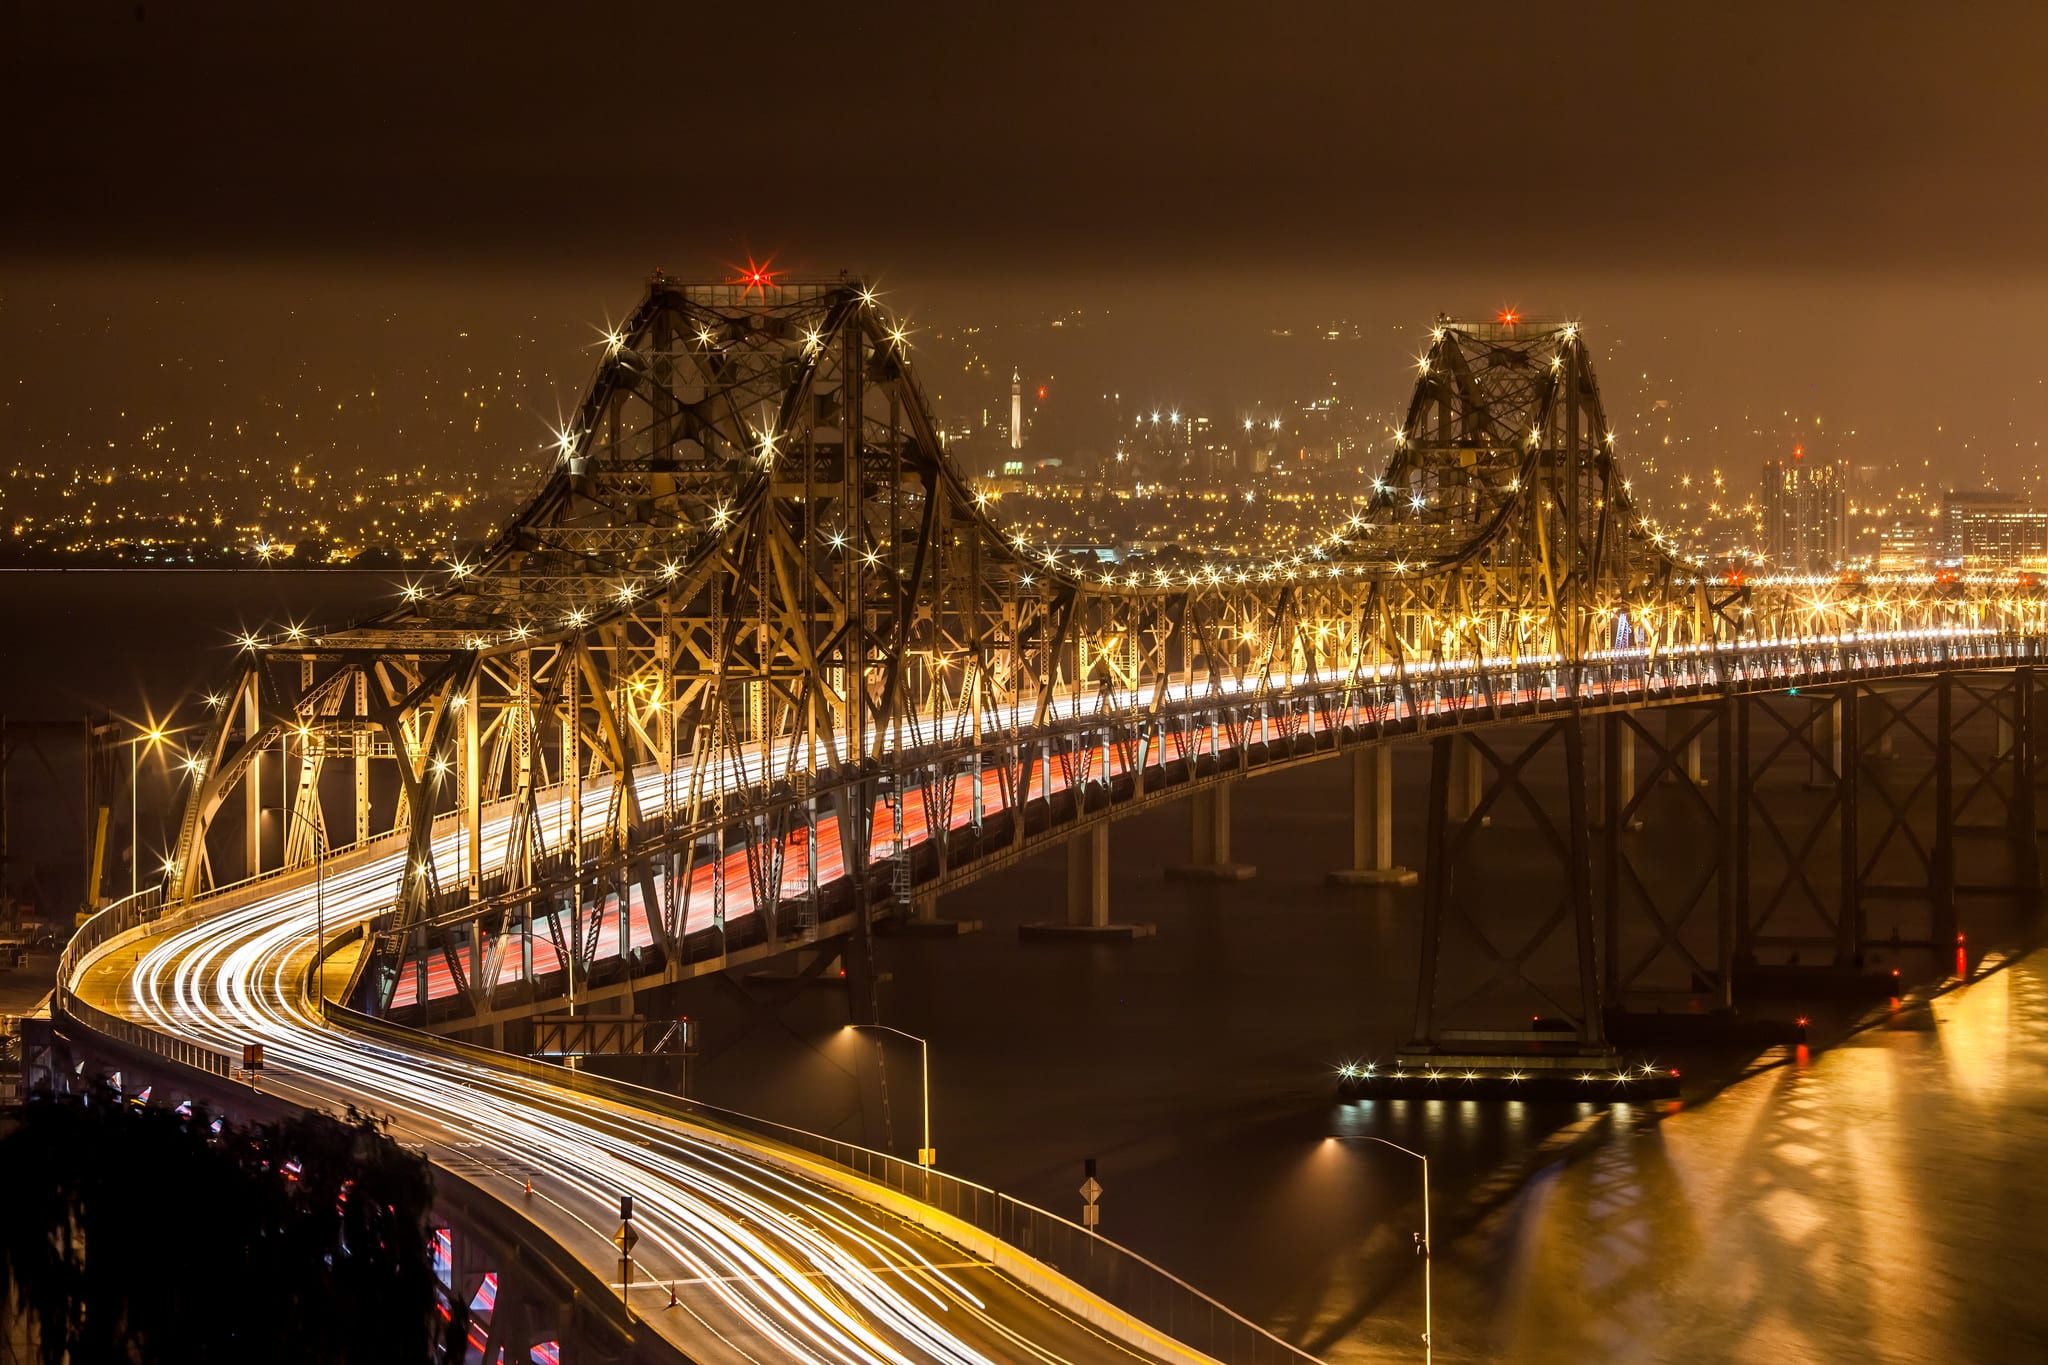 The Oakland Bay Bridge in 2011 -- while work continued on a replacement for part of the span. Photo by Thomas Hawk, via Flickr creative commons.